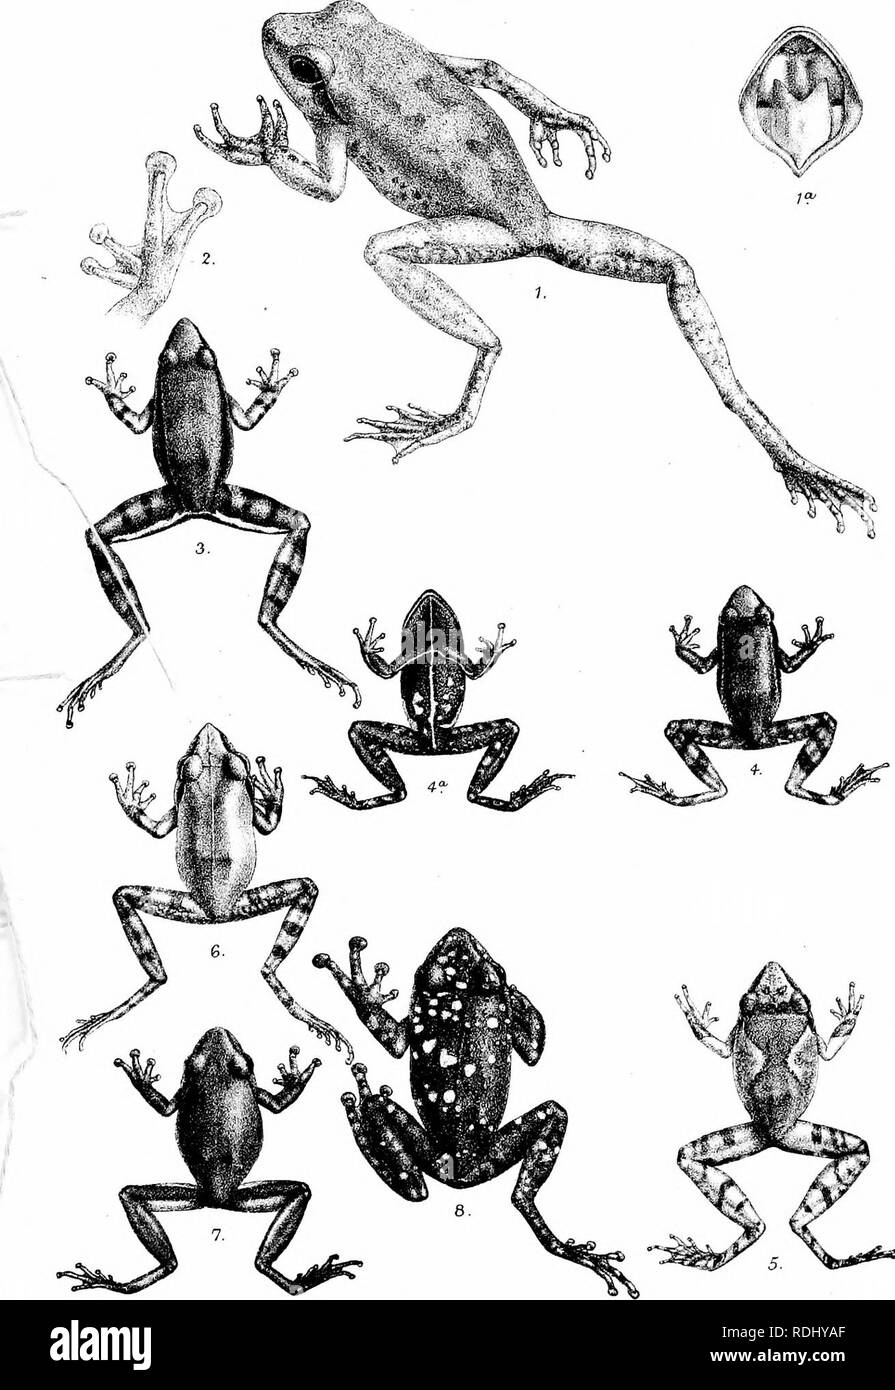 . Catalogue of the Batrachia Salientia s. Ecaudata in the collection of the British museum. Amphibians. PLX.. HMintern del. Mm.-tern Bros.imp 7. Chxromaniis petersw. 2. ChirffmaiUis rixfesoens. 3. laxdxus fixeaxs. 4. Jxabuus Iwpomelcbe. S.Txcdus ojoyftwruehMs. Glaxdus ruxsuixxs- l.TaxuUxs bcdcLomii/. 8. Txmlls ouJLeptrsus.. Please note that these images are extracted from scanned page images that may have been digitally enhanced for readability - coloration and appearance of these illustrations may not perfectly resemble the original work.. British Museum (Natural History). Dept. of Zoology; B Stock Photo